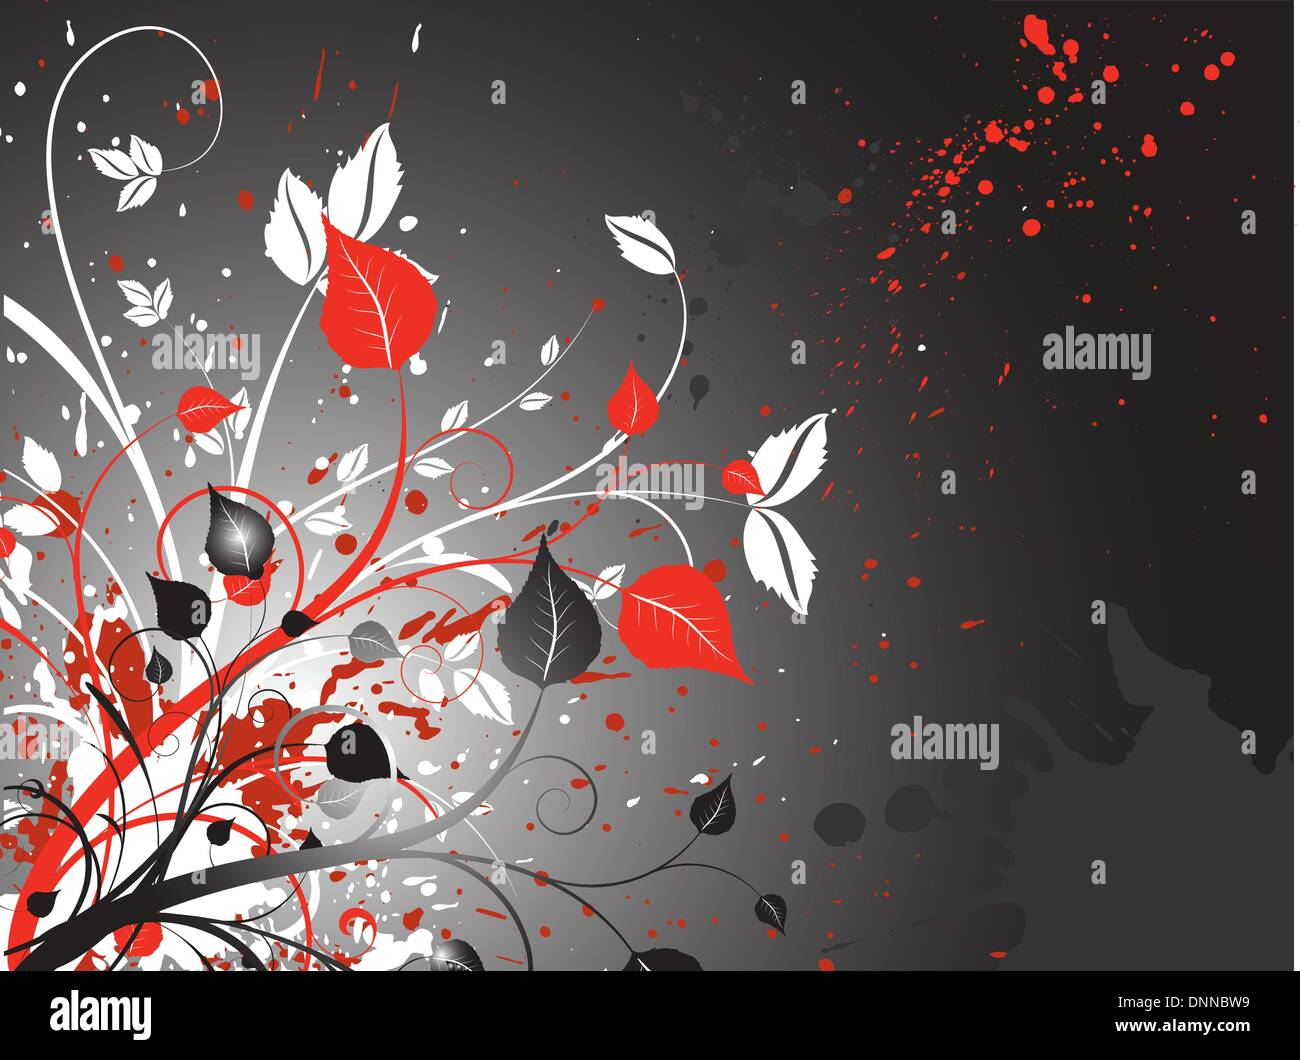 Grunge floral background Immagini Stock